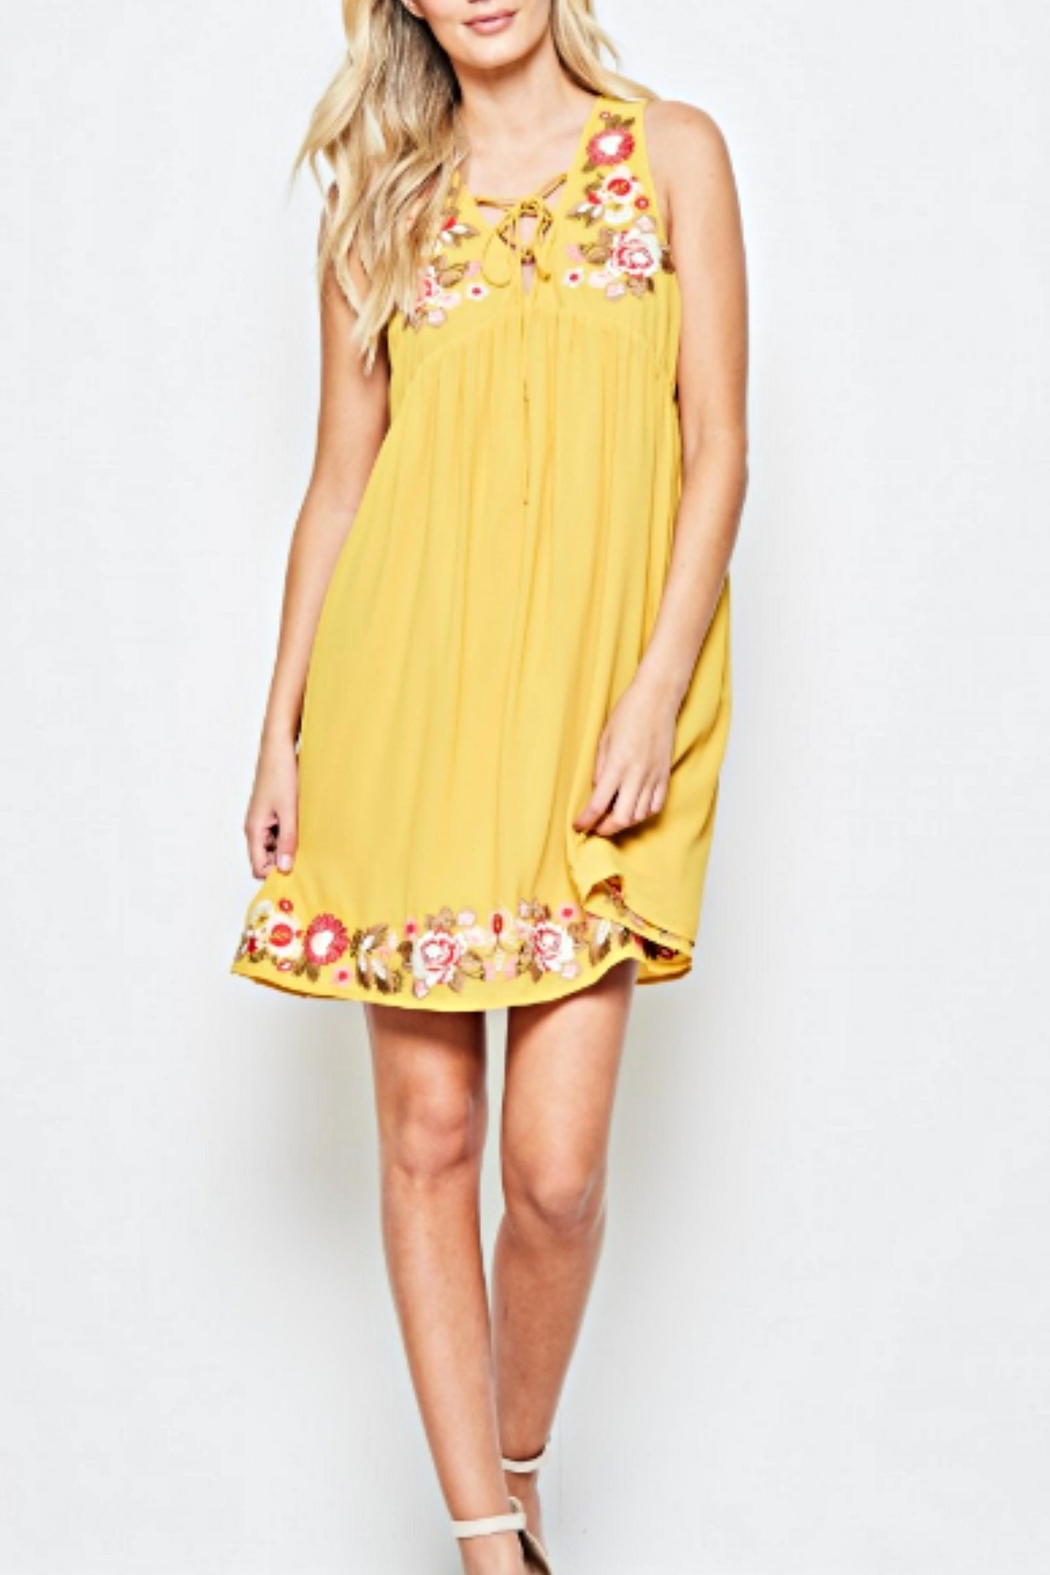 Andree by Unit Embroidered Golden Sundress - Front Full Image